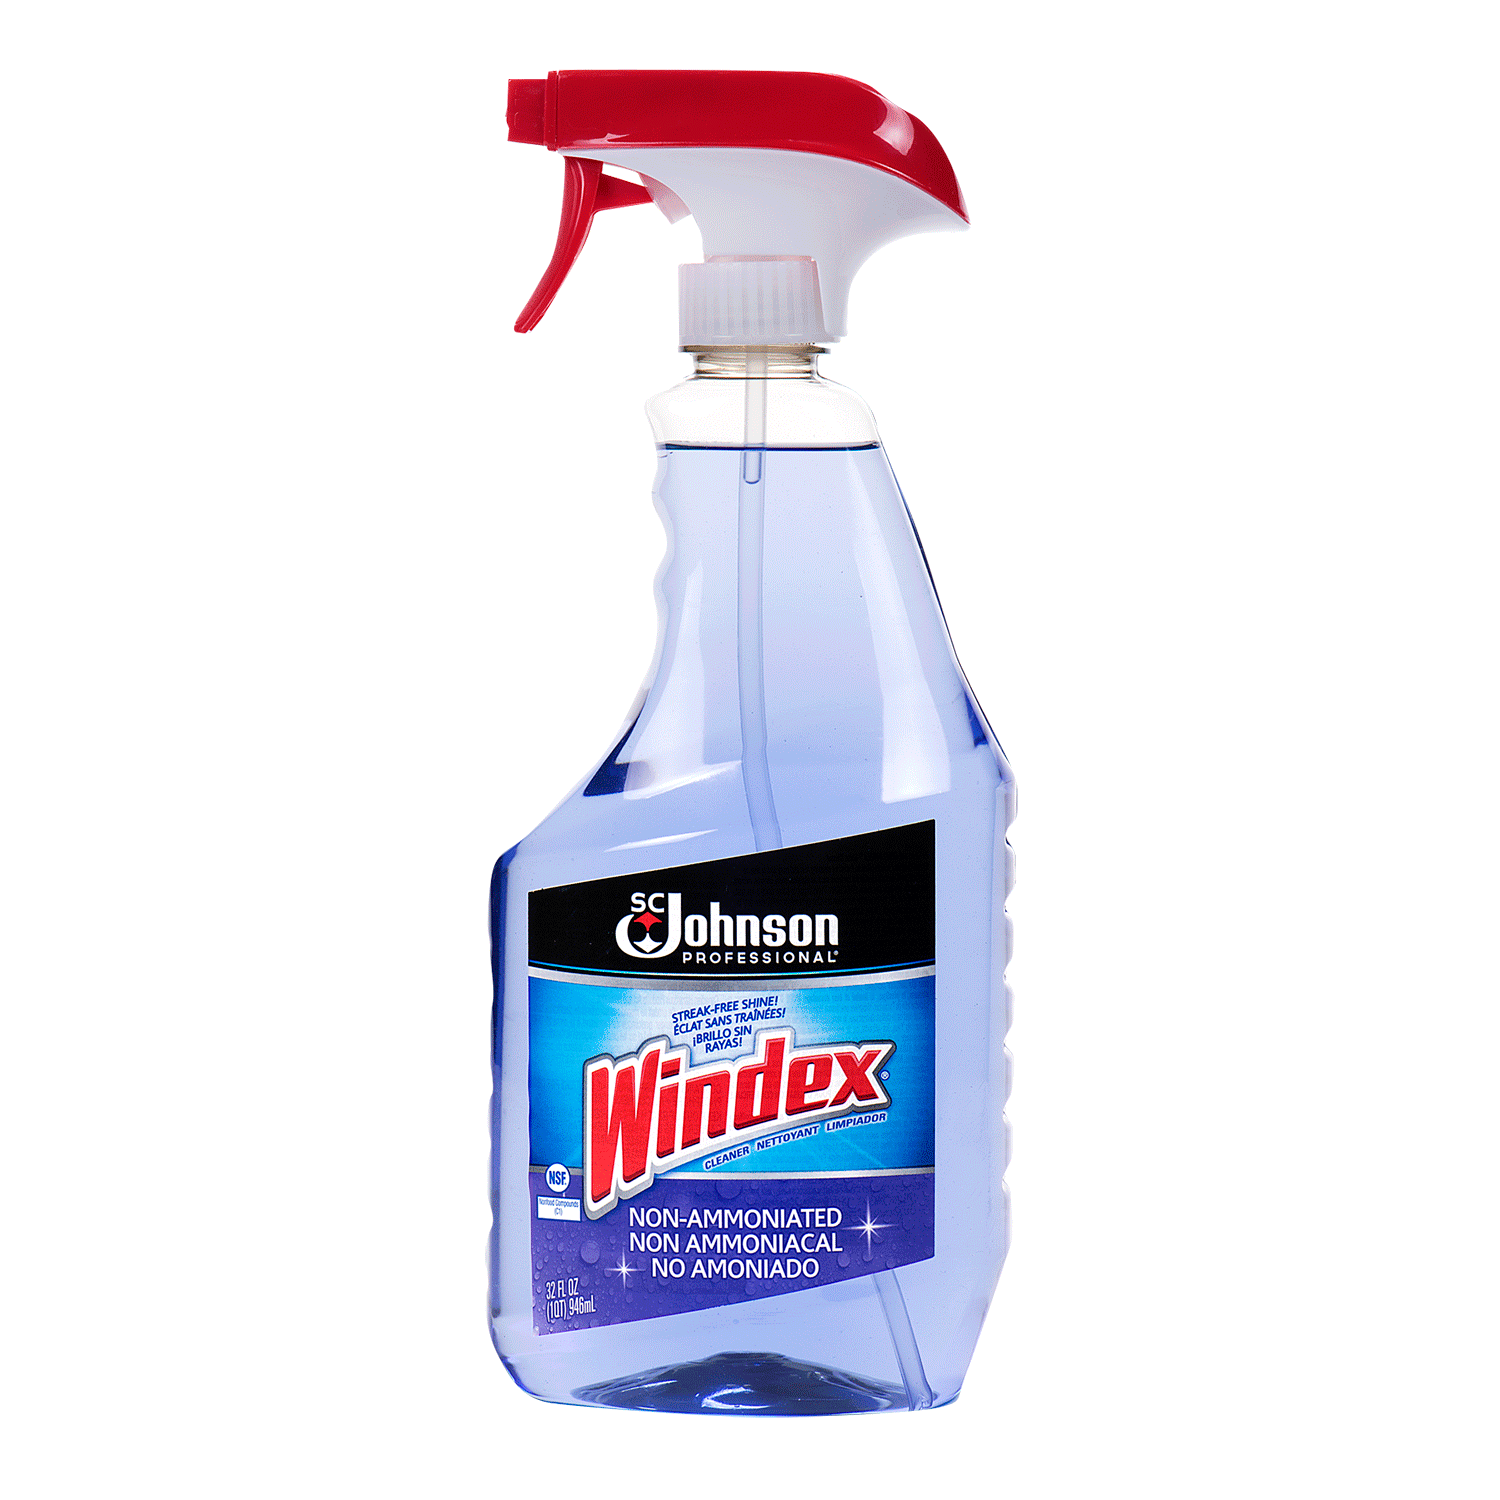 Windex_NA_Spray1500x1500